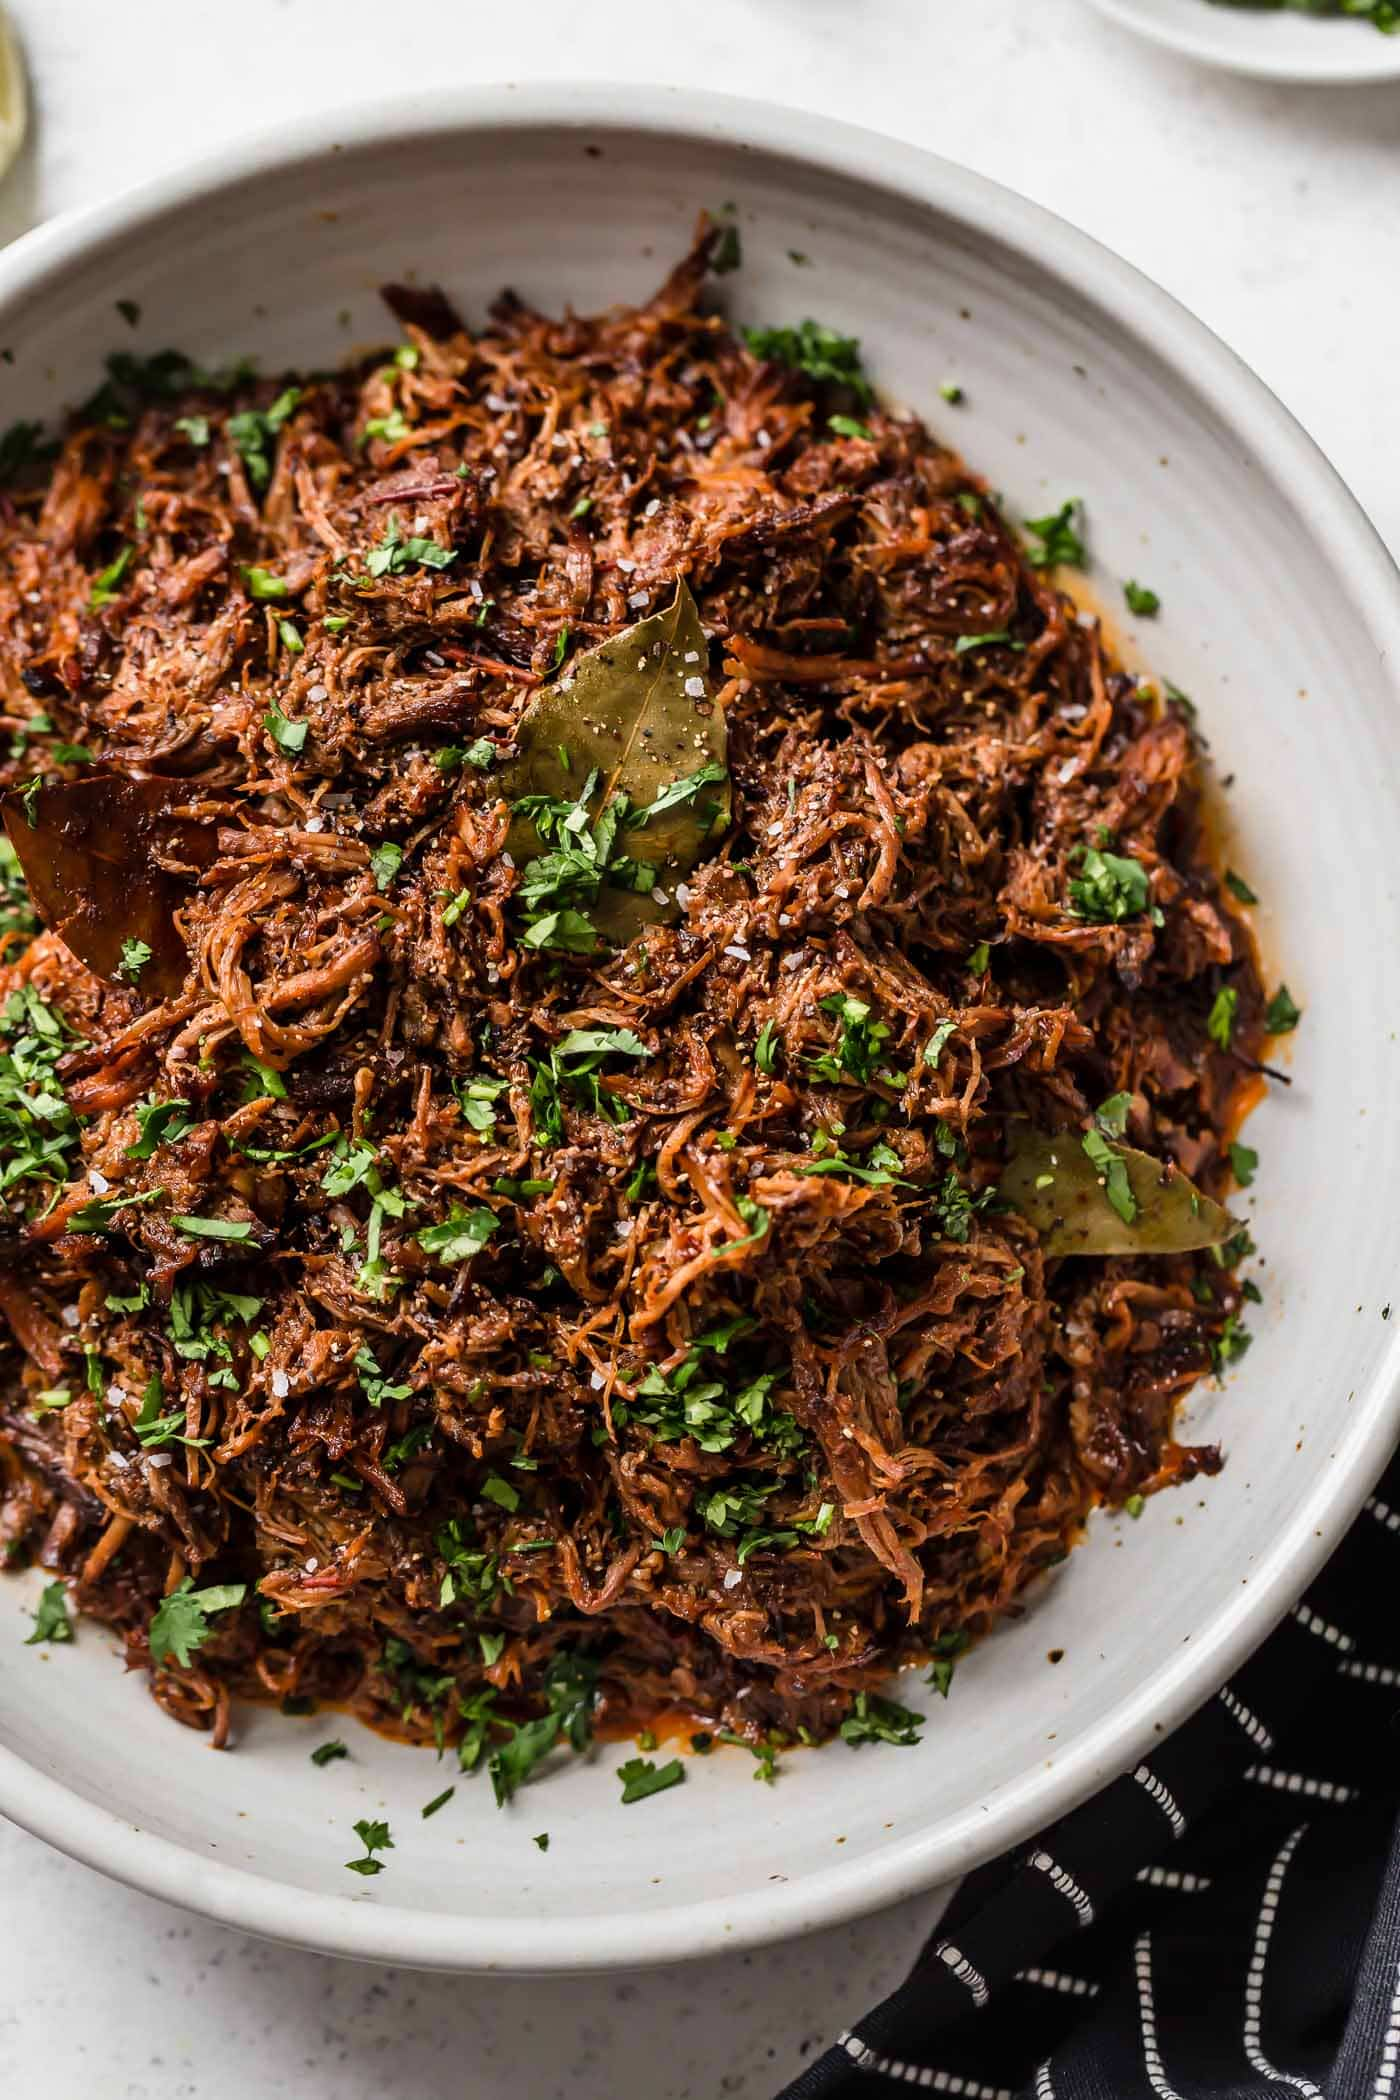 Slow cooker shredded barbacoa beef in a white serving bowl garnished with cilantro.